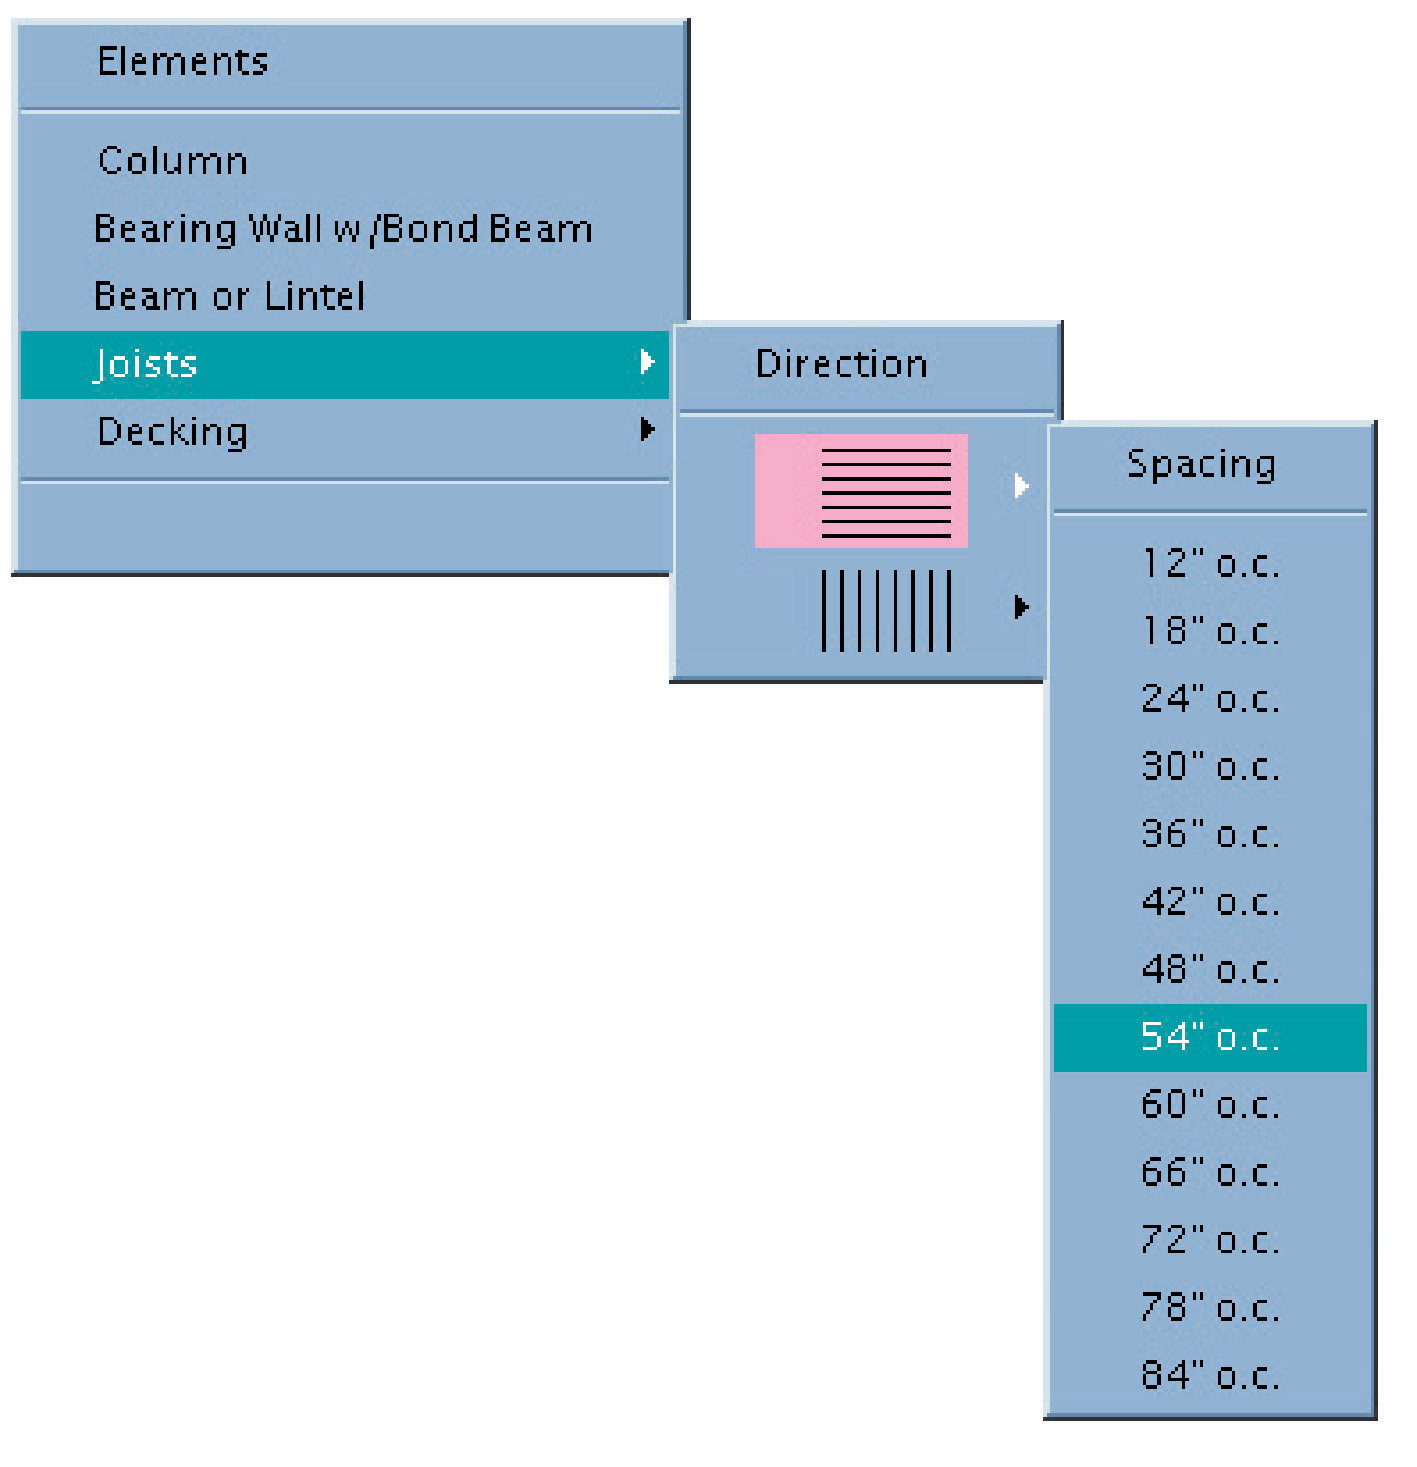 ARE DIVISIONS & REFERENCE MATERIALS: GRAPHIC VIGNETTE SECTIONS Menus and Windows DRAW Clicking on this icon brings up the menu below.